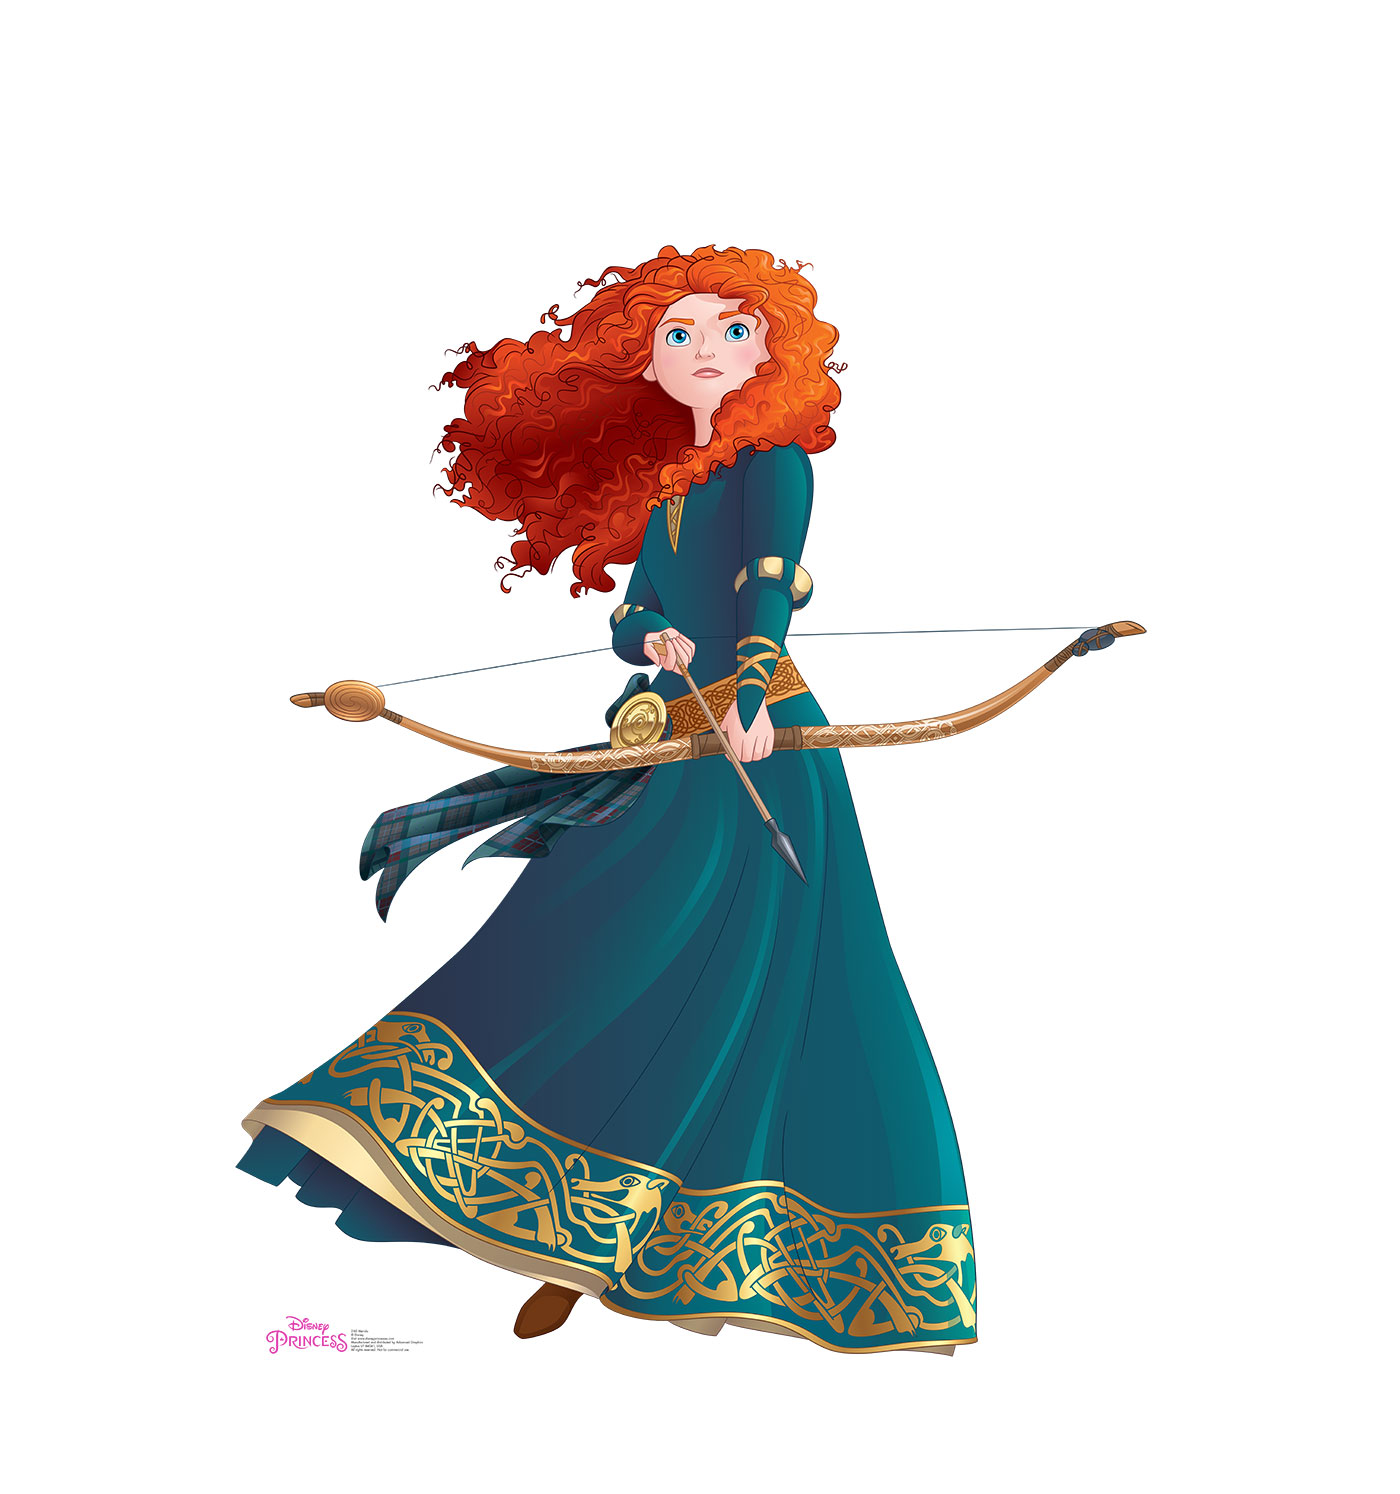 Disney Princesa Merida Valiente Lifesize Standup Pie